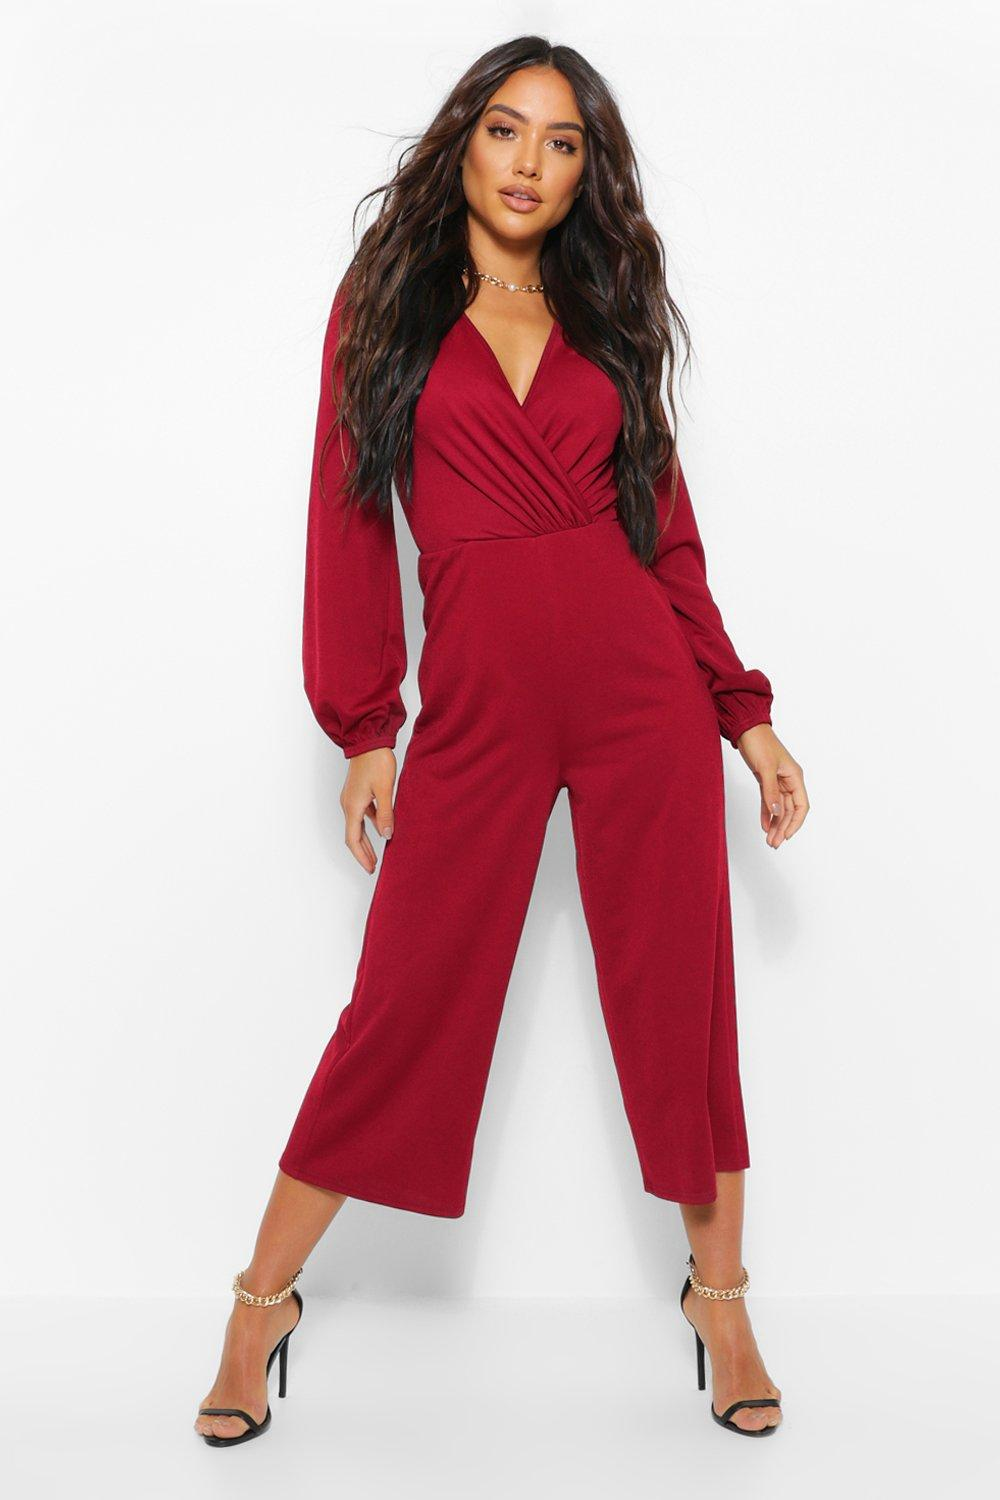 1980s Clothing, Fashion   80s Style Clothes Womens Wrap Long Sleeve Culotte Jumpsuit - Red - 10 $14.00 AT vintagedancer.com